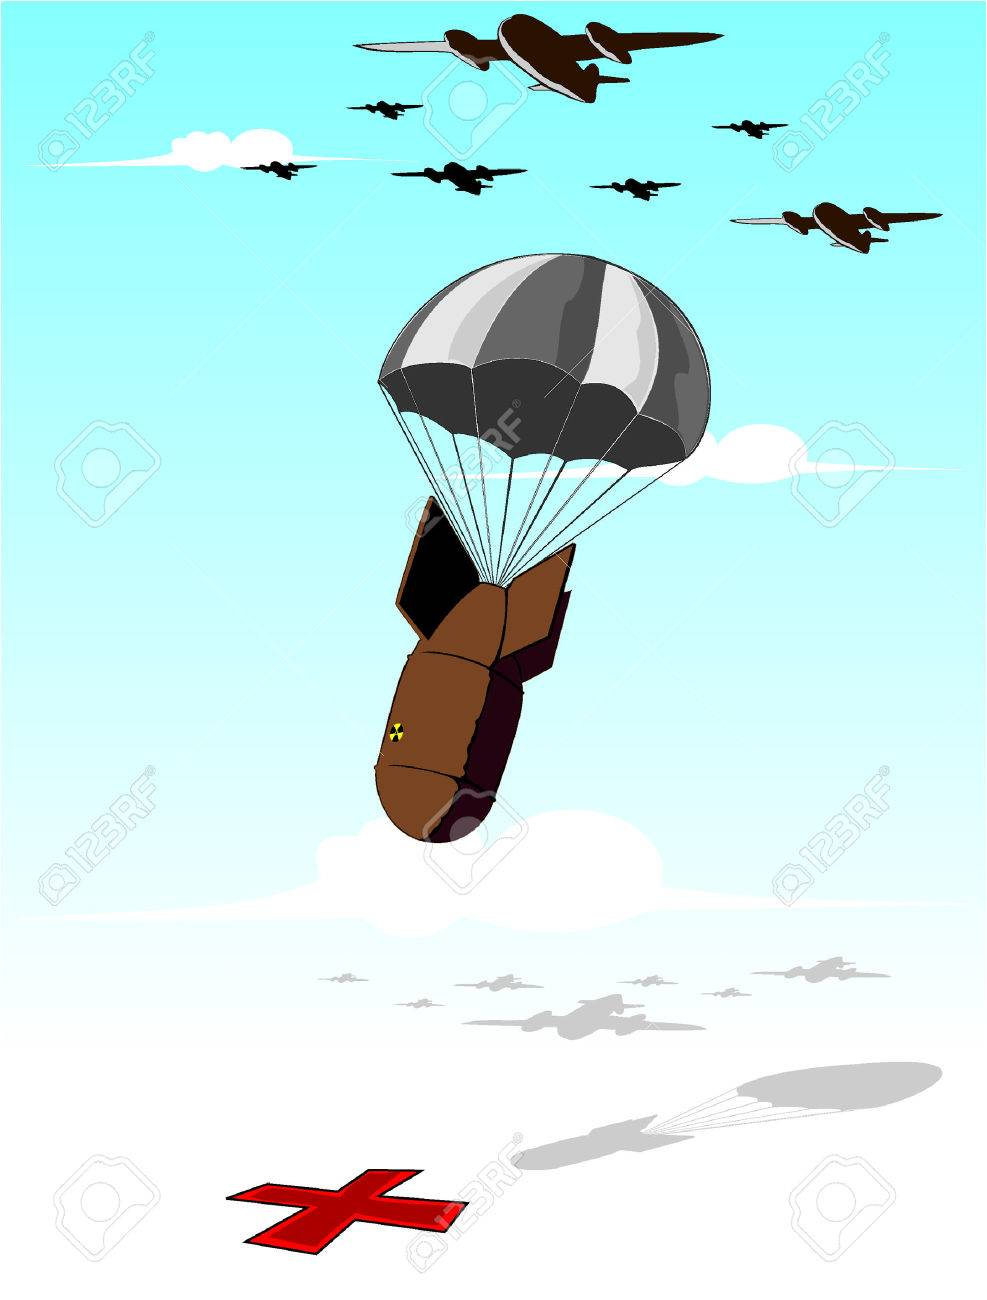 falling bomb illustration Stock Vector - 8350804